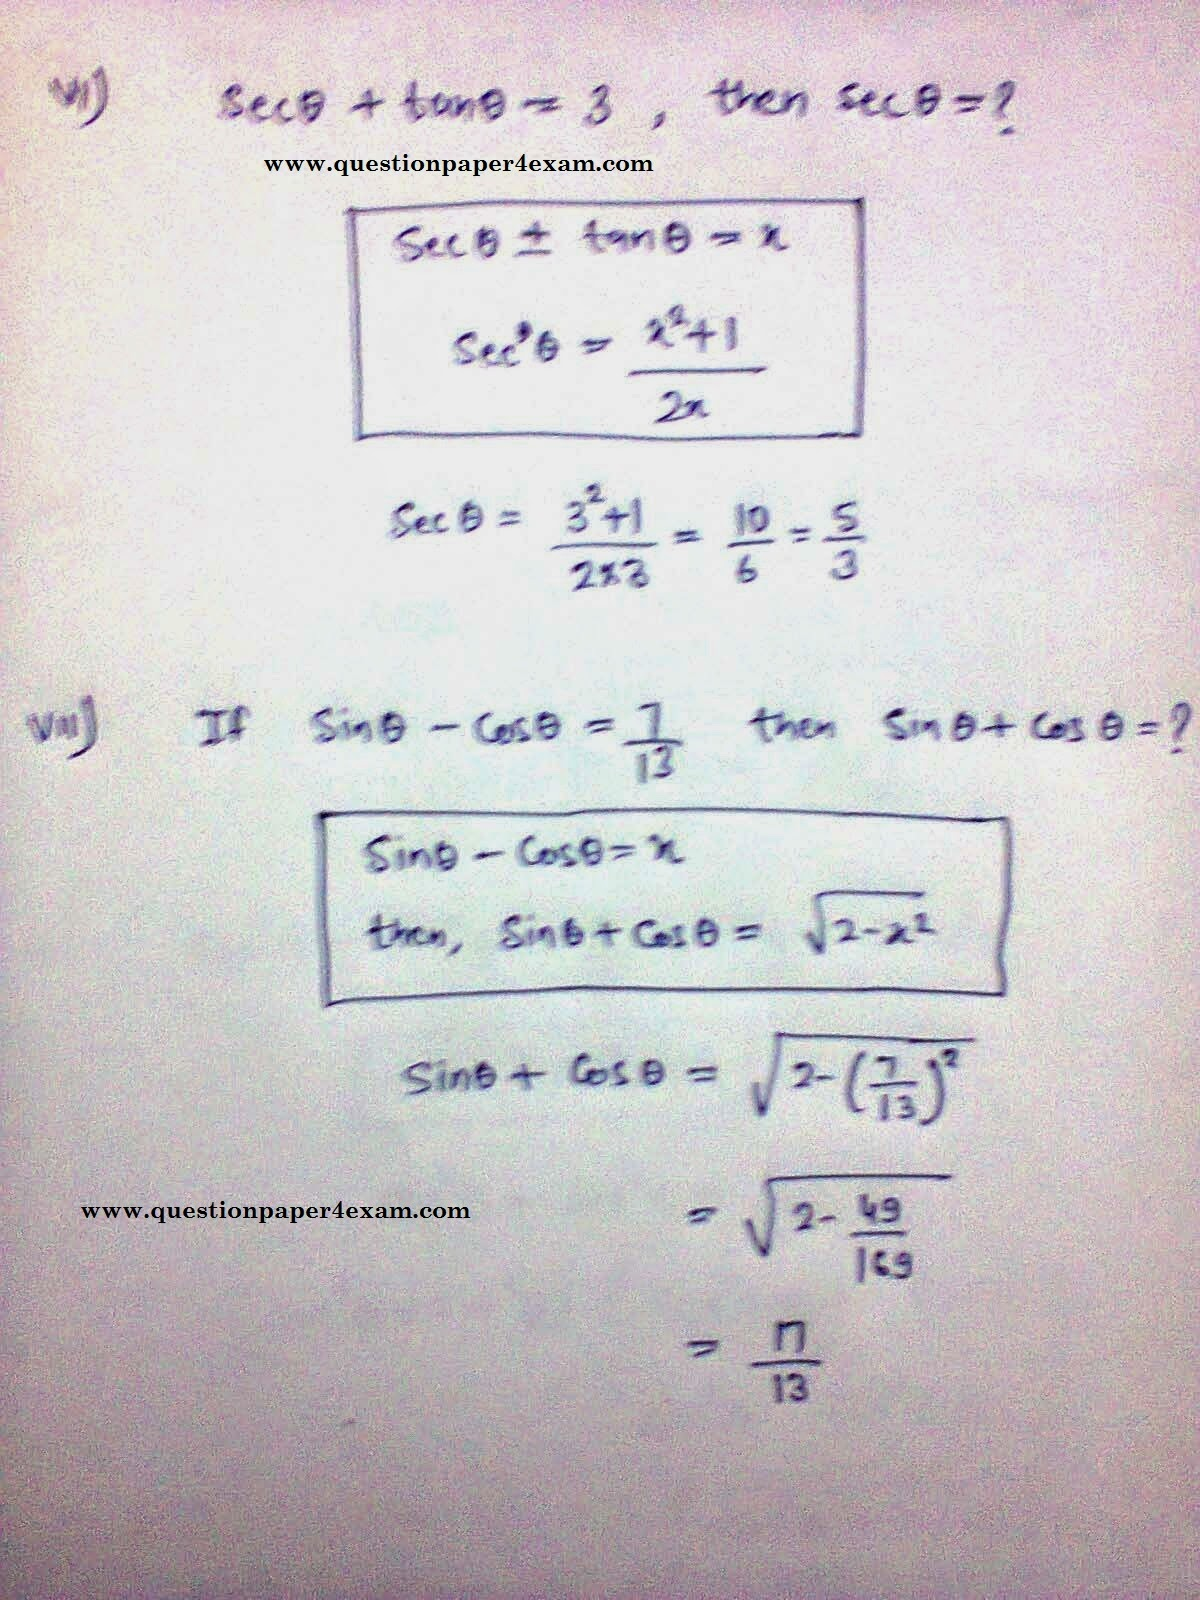 ssc exam trigonometry basic concepts question paper if this article helps you please share your friends